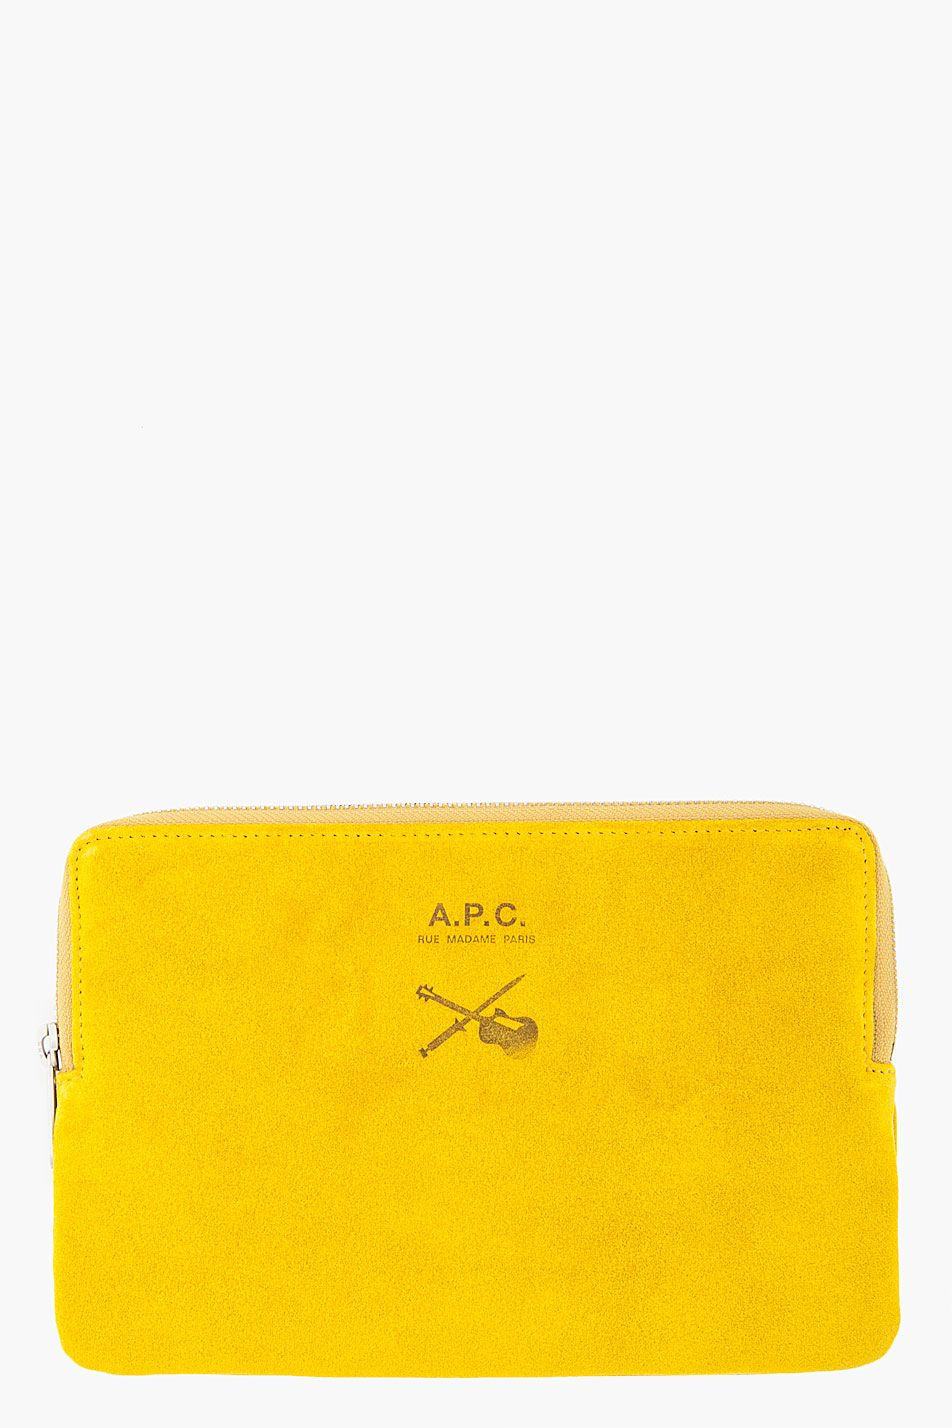 { Yellow suede wallet by A.P.C. [$235] }